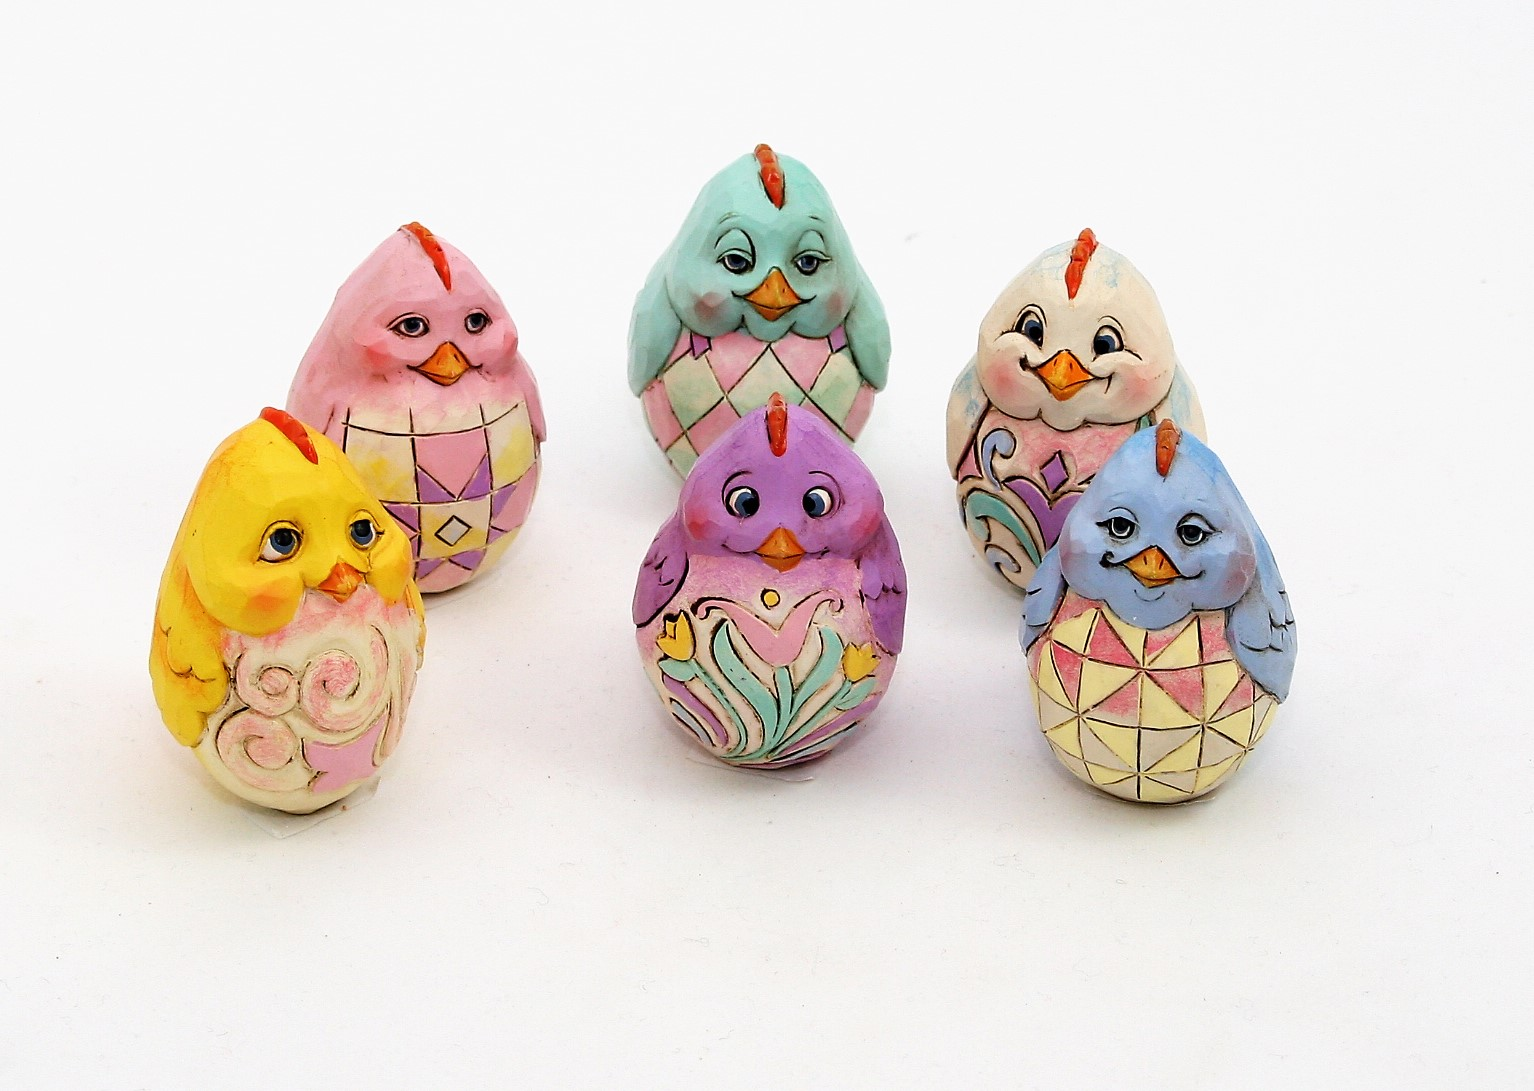 New box truck heartwood manufacturing - Enesco Jim Shore Heartwood Creek Easter 2 5 Mini Egg Shaped Chick 4056944